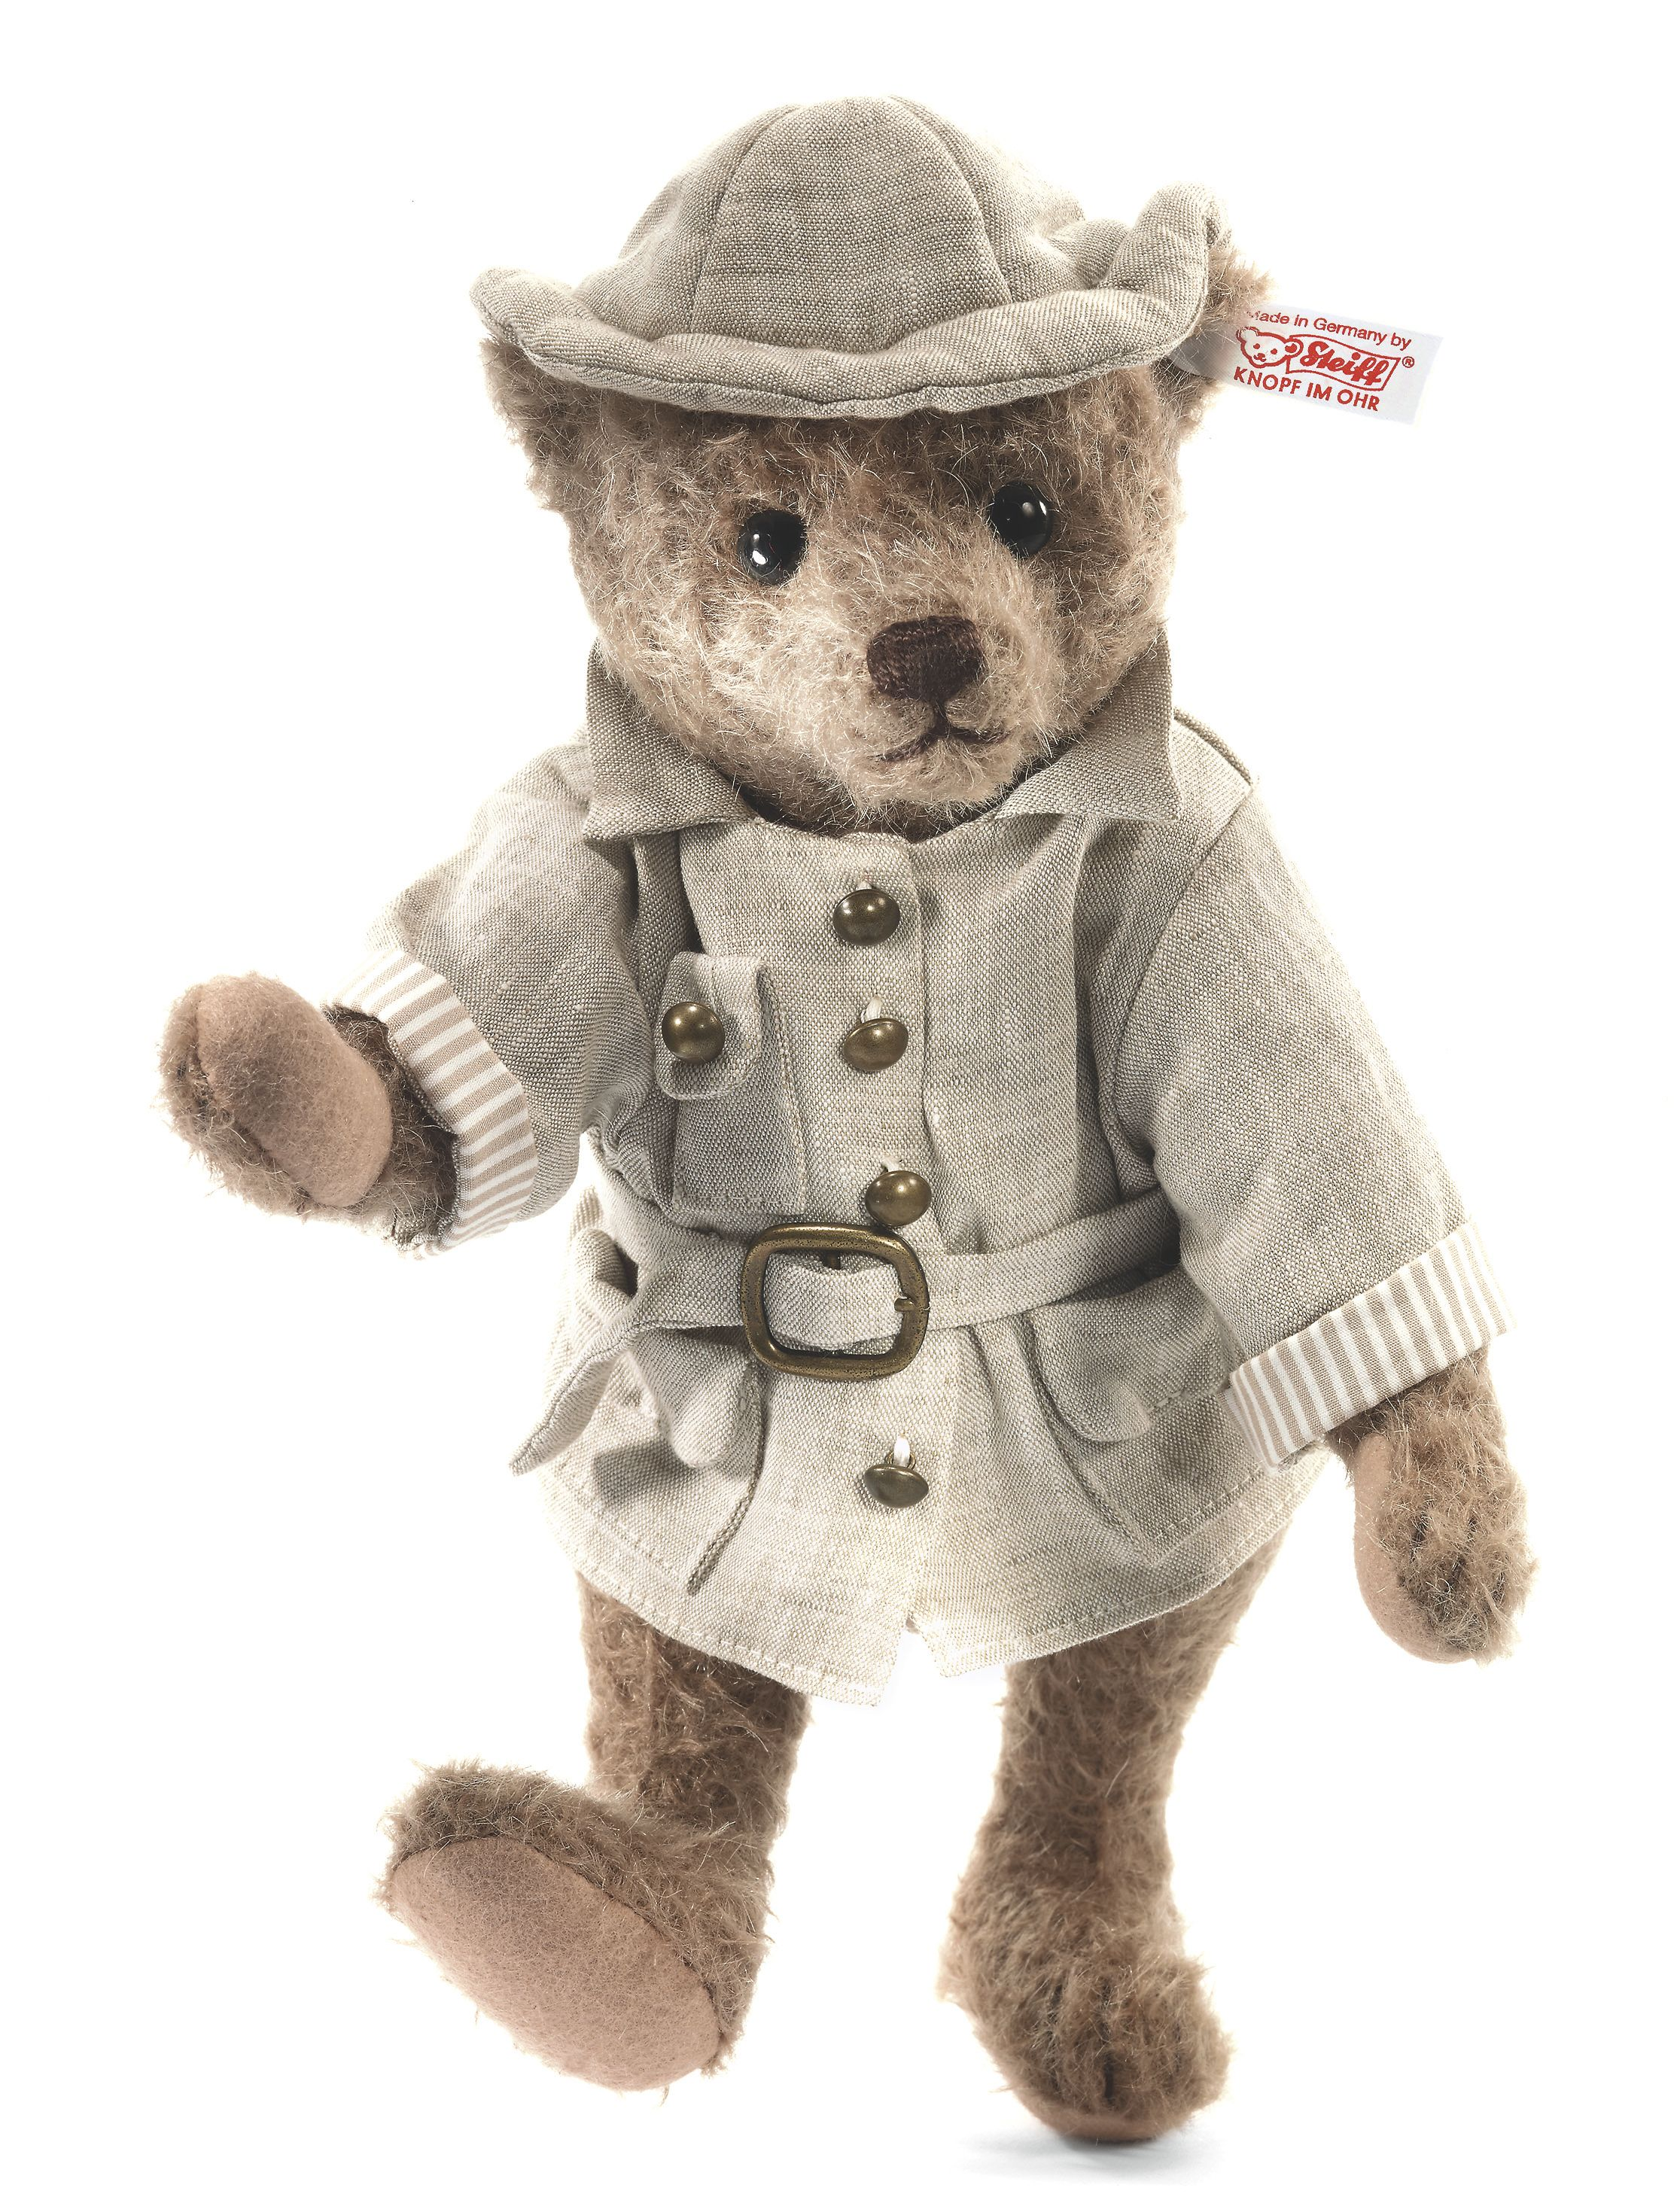 Livingstone Teddy Bear 034985 Steiff